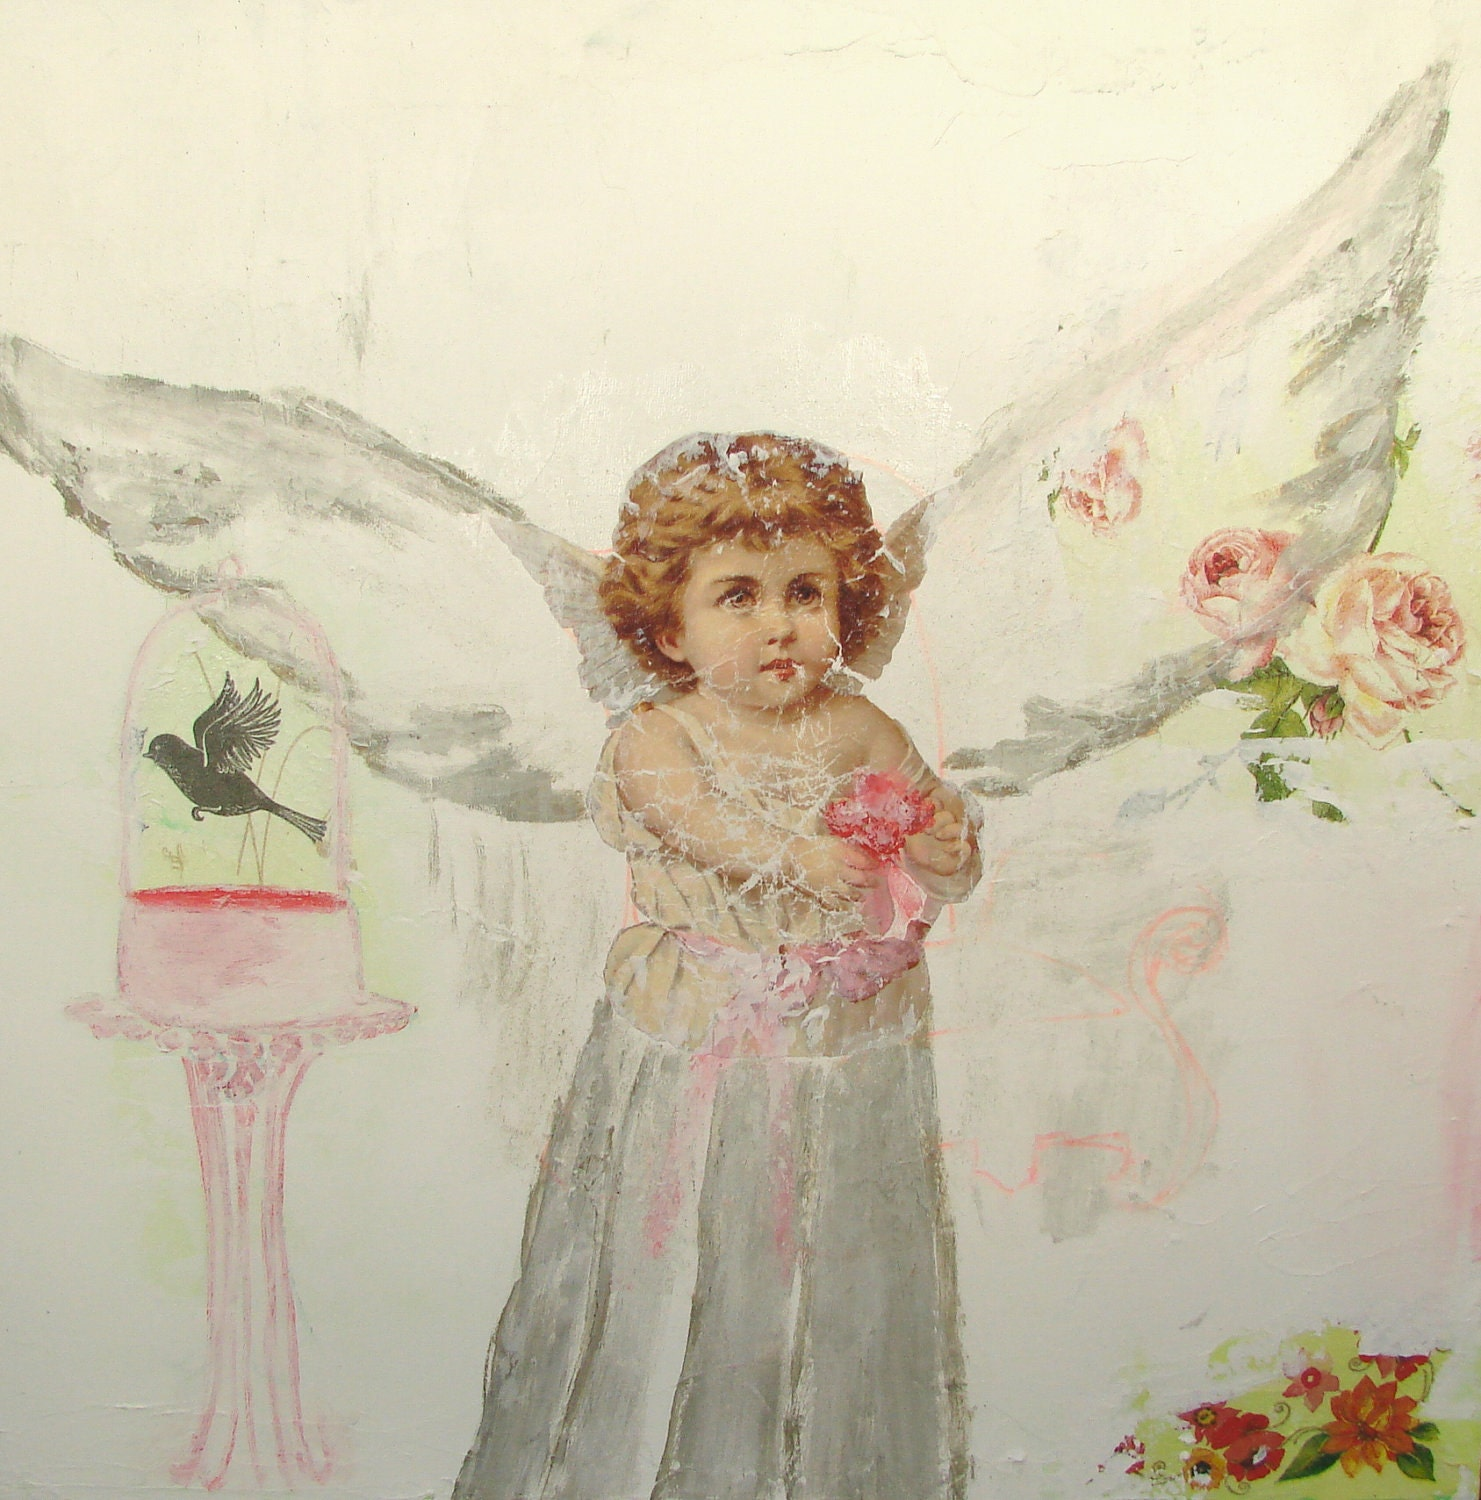 Original Acrylic Mixed Media Painting / Victorian Collage    15''x15''x 1.5'' My Guardian Angel by Noémia Prada